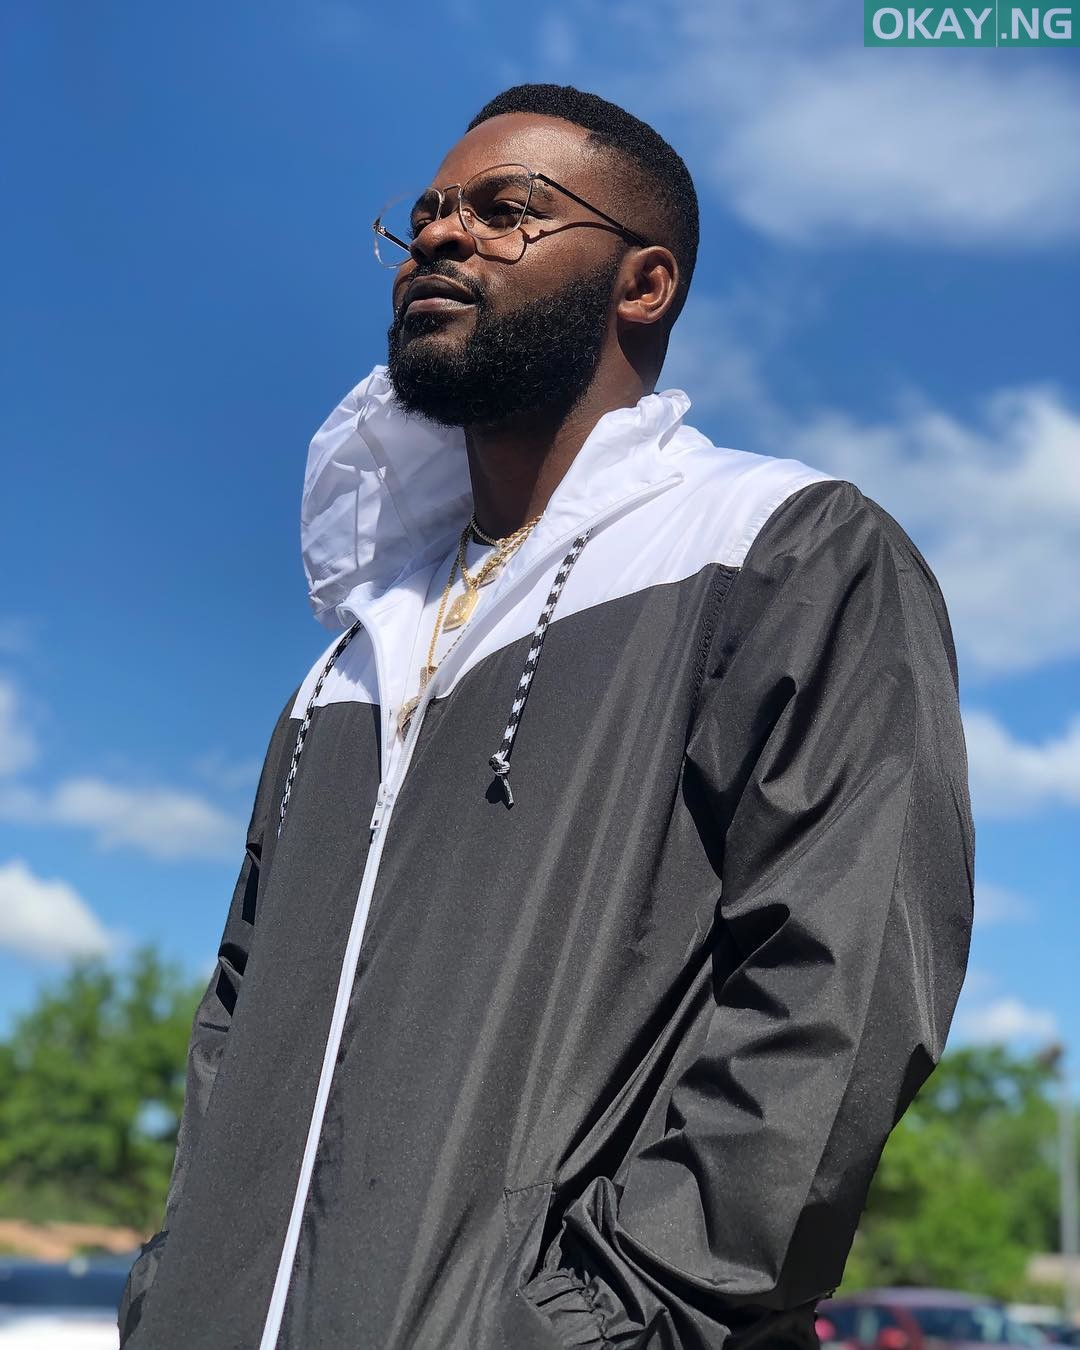 Falz new okay ng - Falz talks on religion, him being an atheist